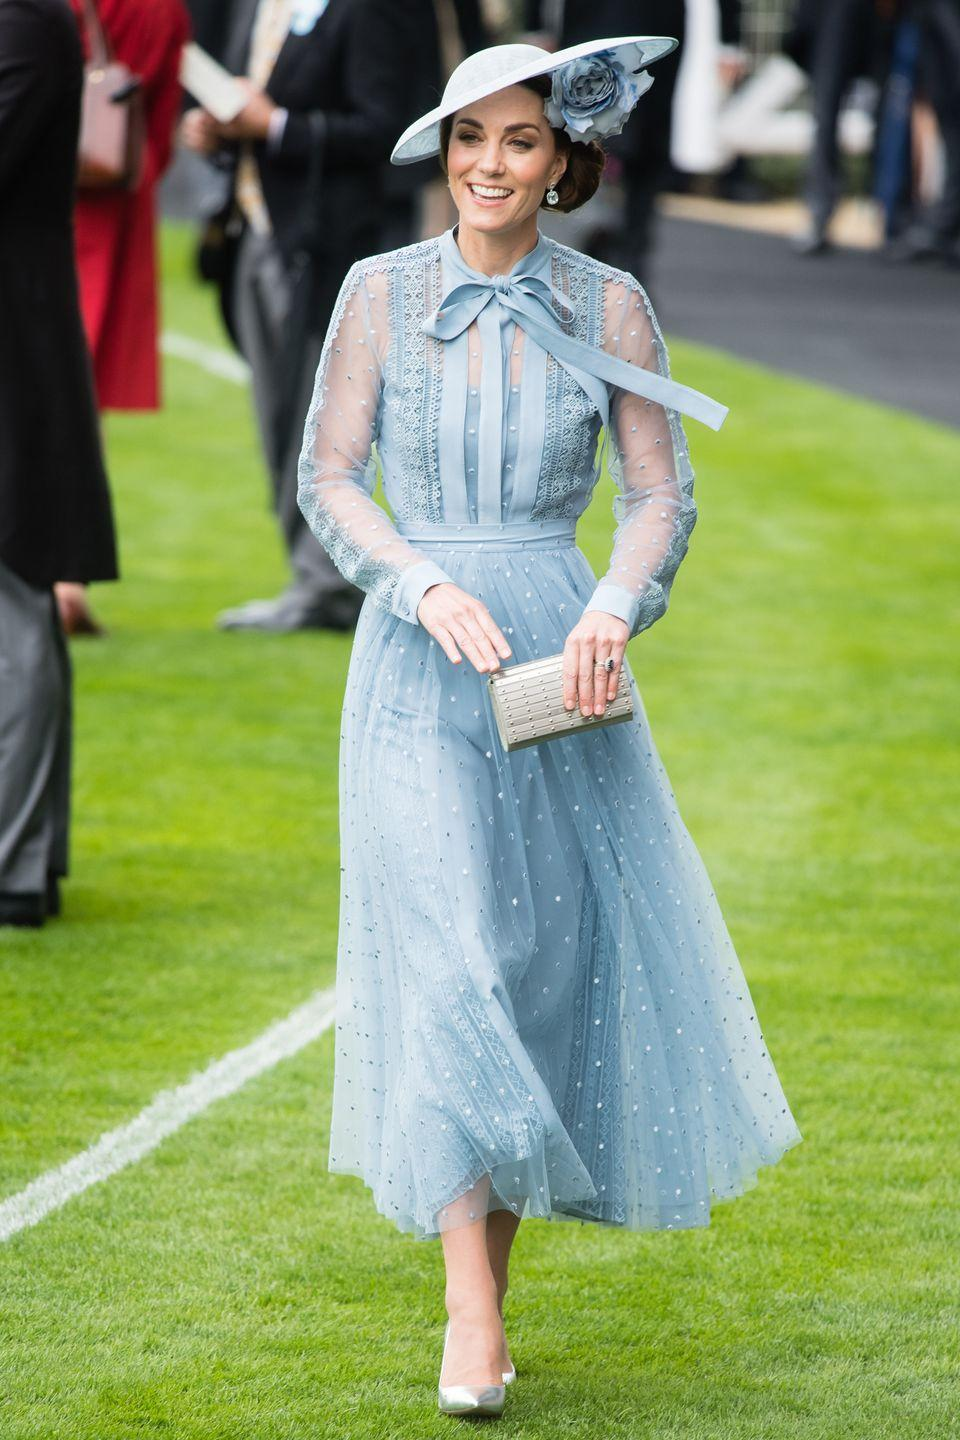 <p>Who: Catherine, Duchess of Cambridge</p><p>When: June 18, 2019</p><p>Wearing: Elie Saab, Philip Treacy hat, Gianvito Rossi heels</p><p>Why: Just three days before summer hit, Kate Middleton took one last jab at a classic springtime look. Take her outfit at the Royal Ascot as a final farewell to long-sleeved dresses that can't be worn in hotter weather. </p>